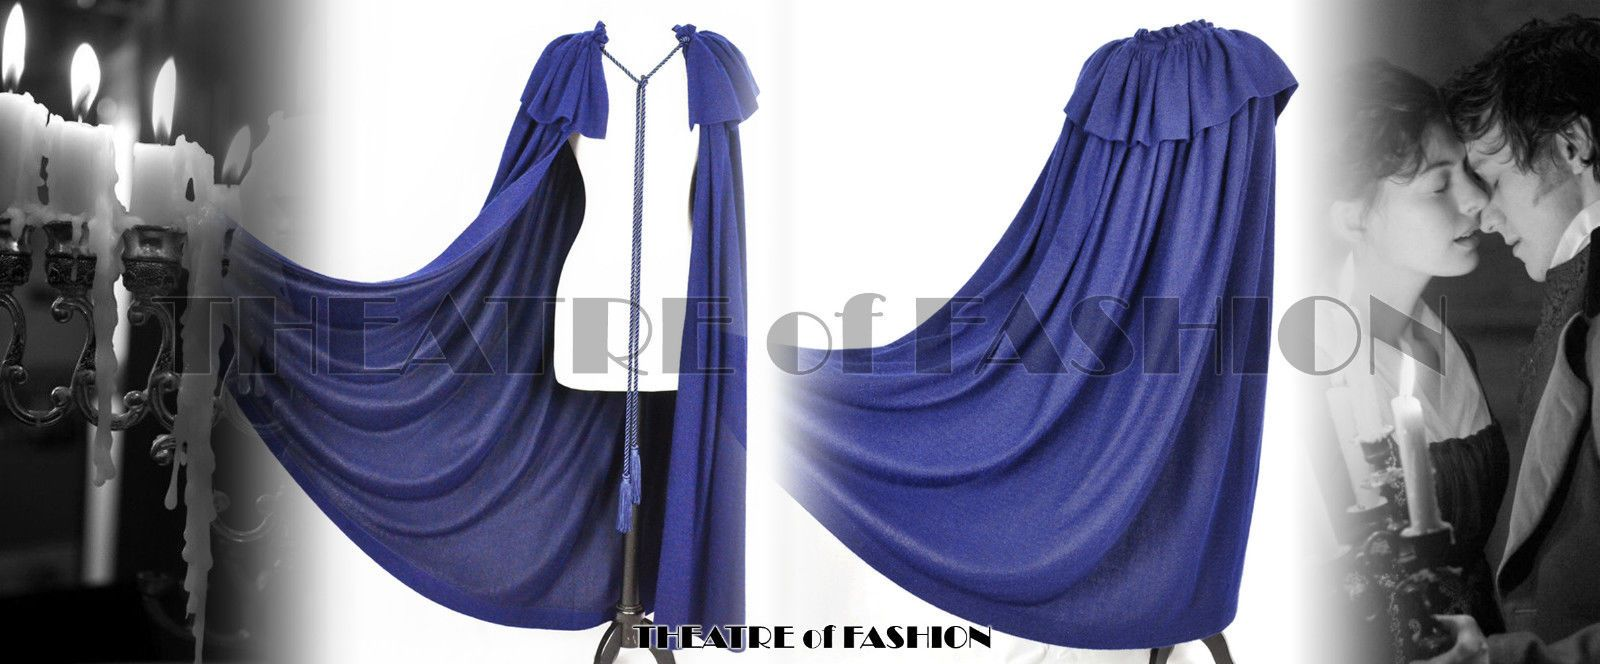 vintage ysl sapphire blue cashmere cape. strolling on dartmoor anyone?